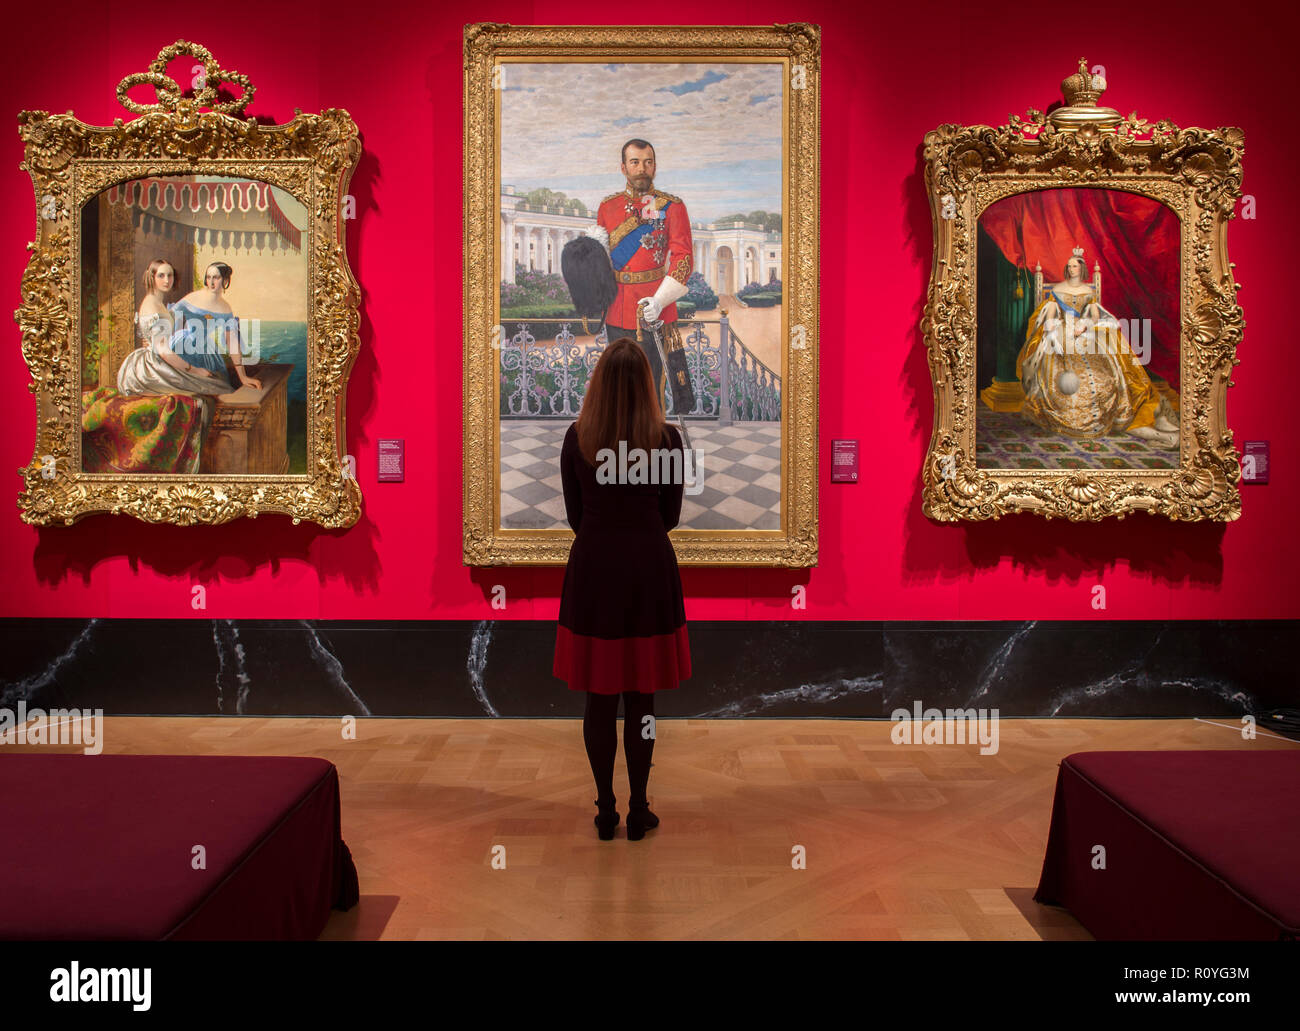 The Queen's Gallery, Buckingham Palace, London, UK. 8 November, 2018. Russia: Royalty & the Romanovs exhibition examines links between the royal houses of Britain and Russia over 300 years beginning with Peter the Great's visit to Britain in 1698. Image (centre); Nikolai Petrovich Bogdanov-Belsky, Emperor Nicholas II, 1908. Credit: Malcolm Park/Alamy Live News. - Stock Image